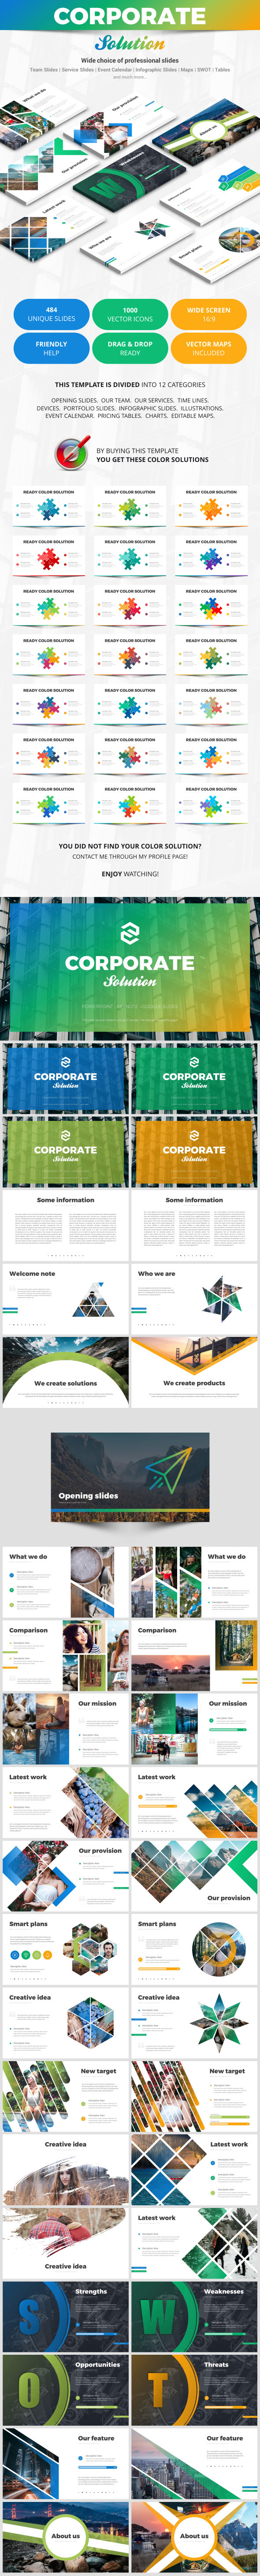 Corporate Solution - Business PowerPoint Templates